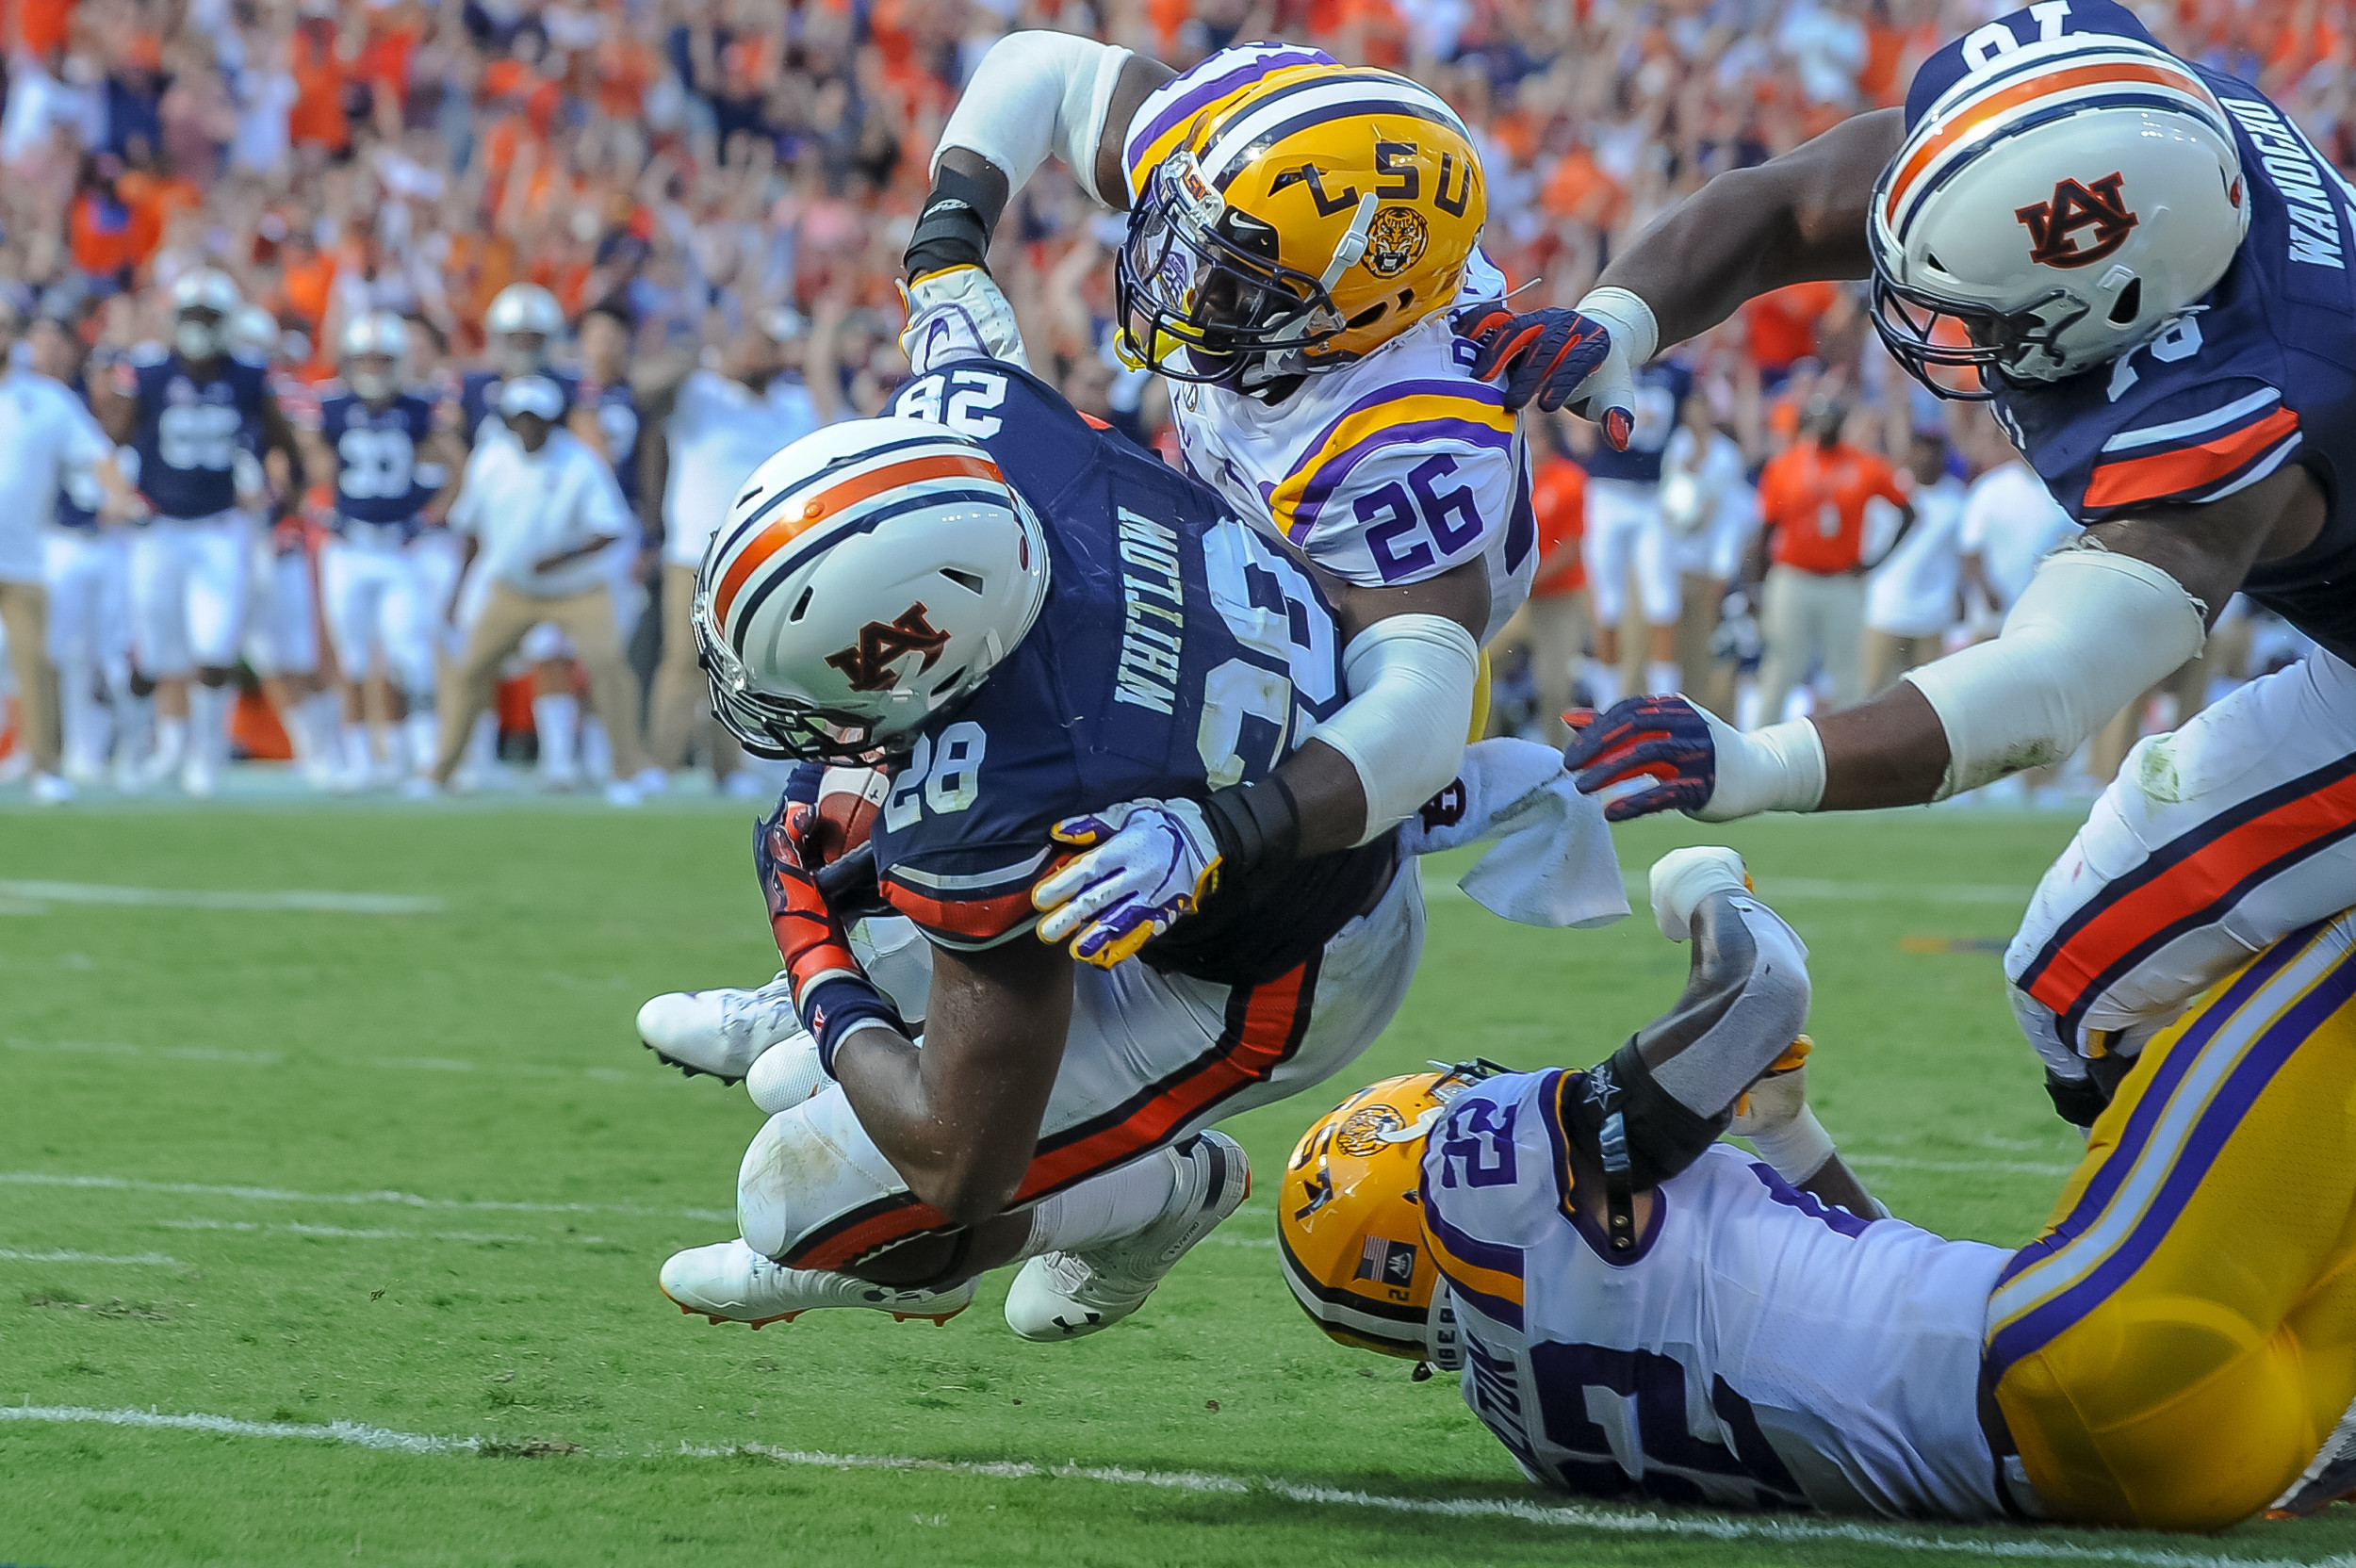 Auburn Tigers running back JaTarvious Whitlow (28) scores as LSU Tigers safety John Battle (26) tries to tackle during the first half of Saturday's game, at Jordan Hare Stadium in Auburn. (Contributed by Jeff Johnsey)